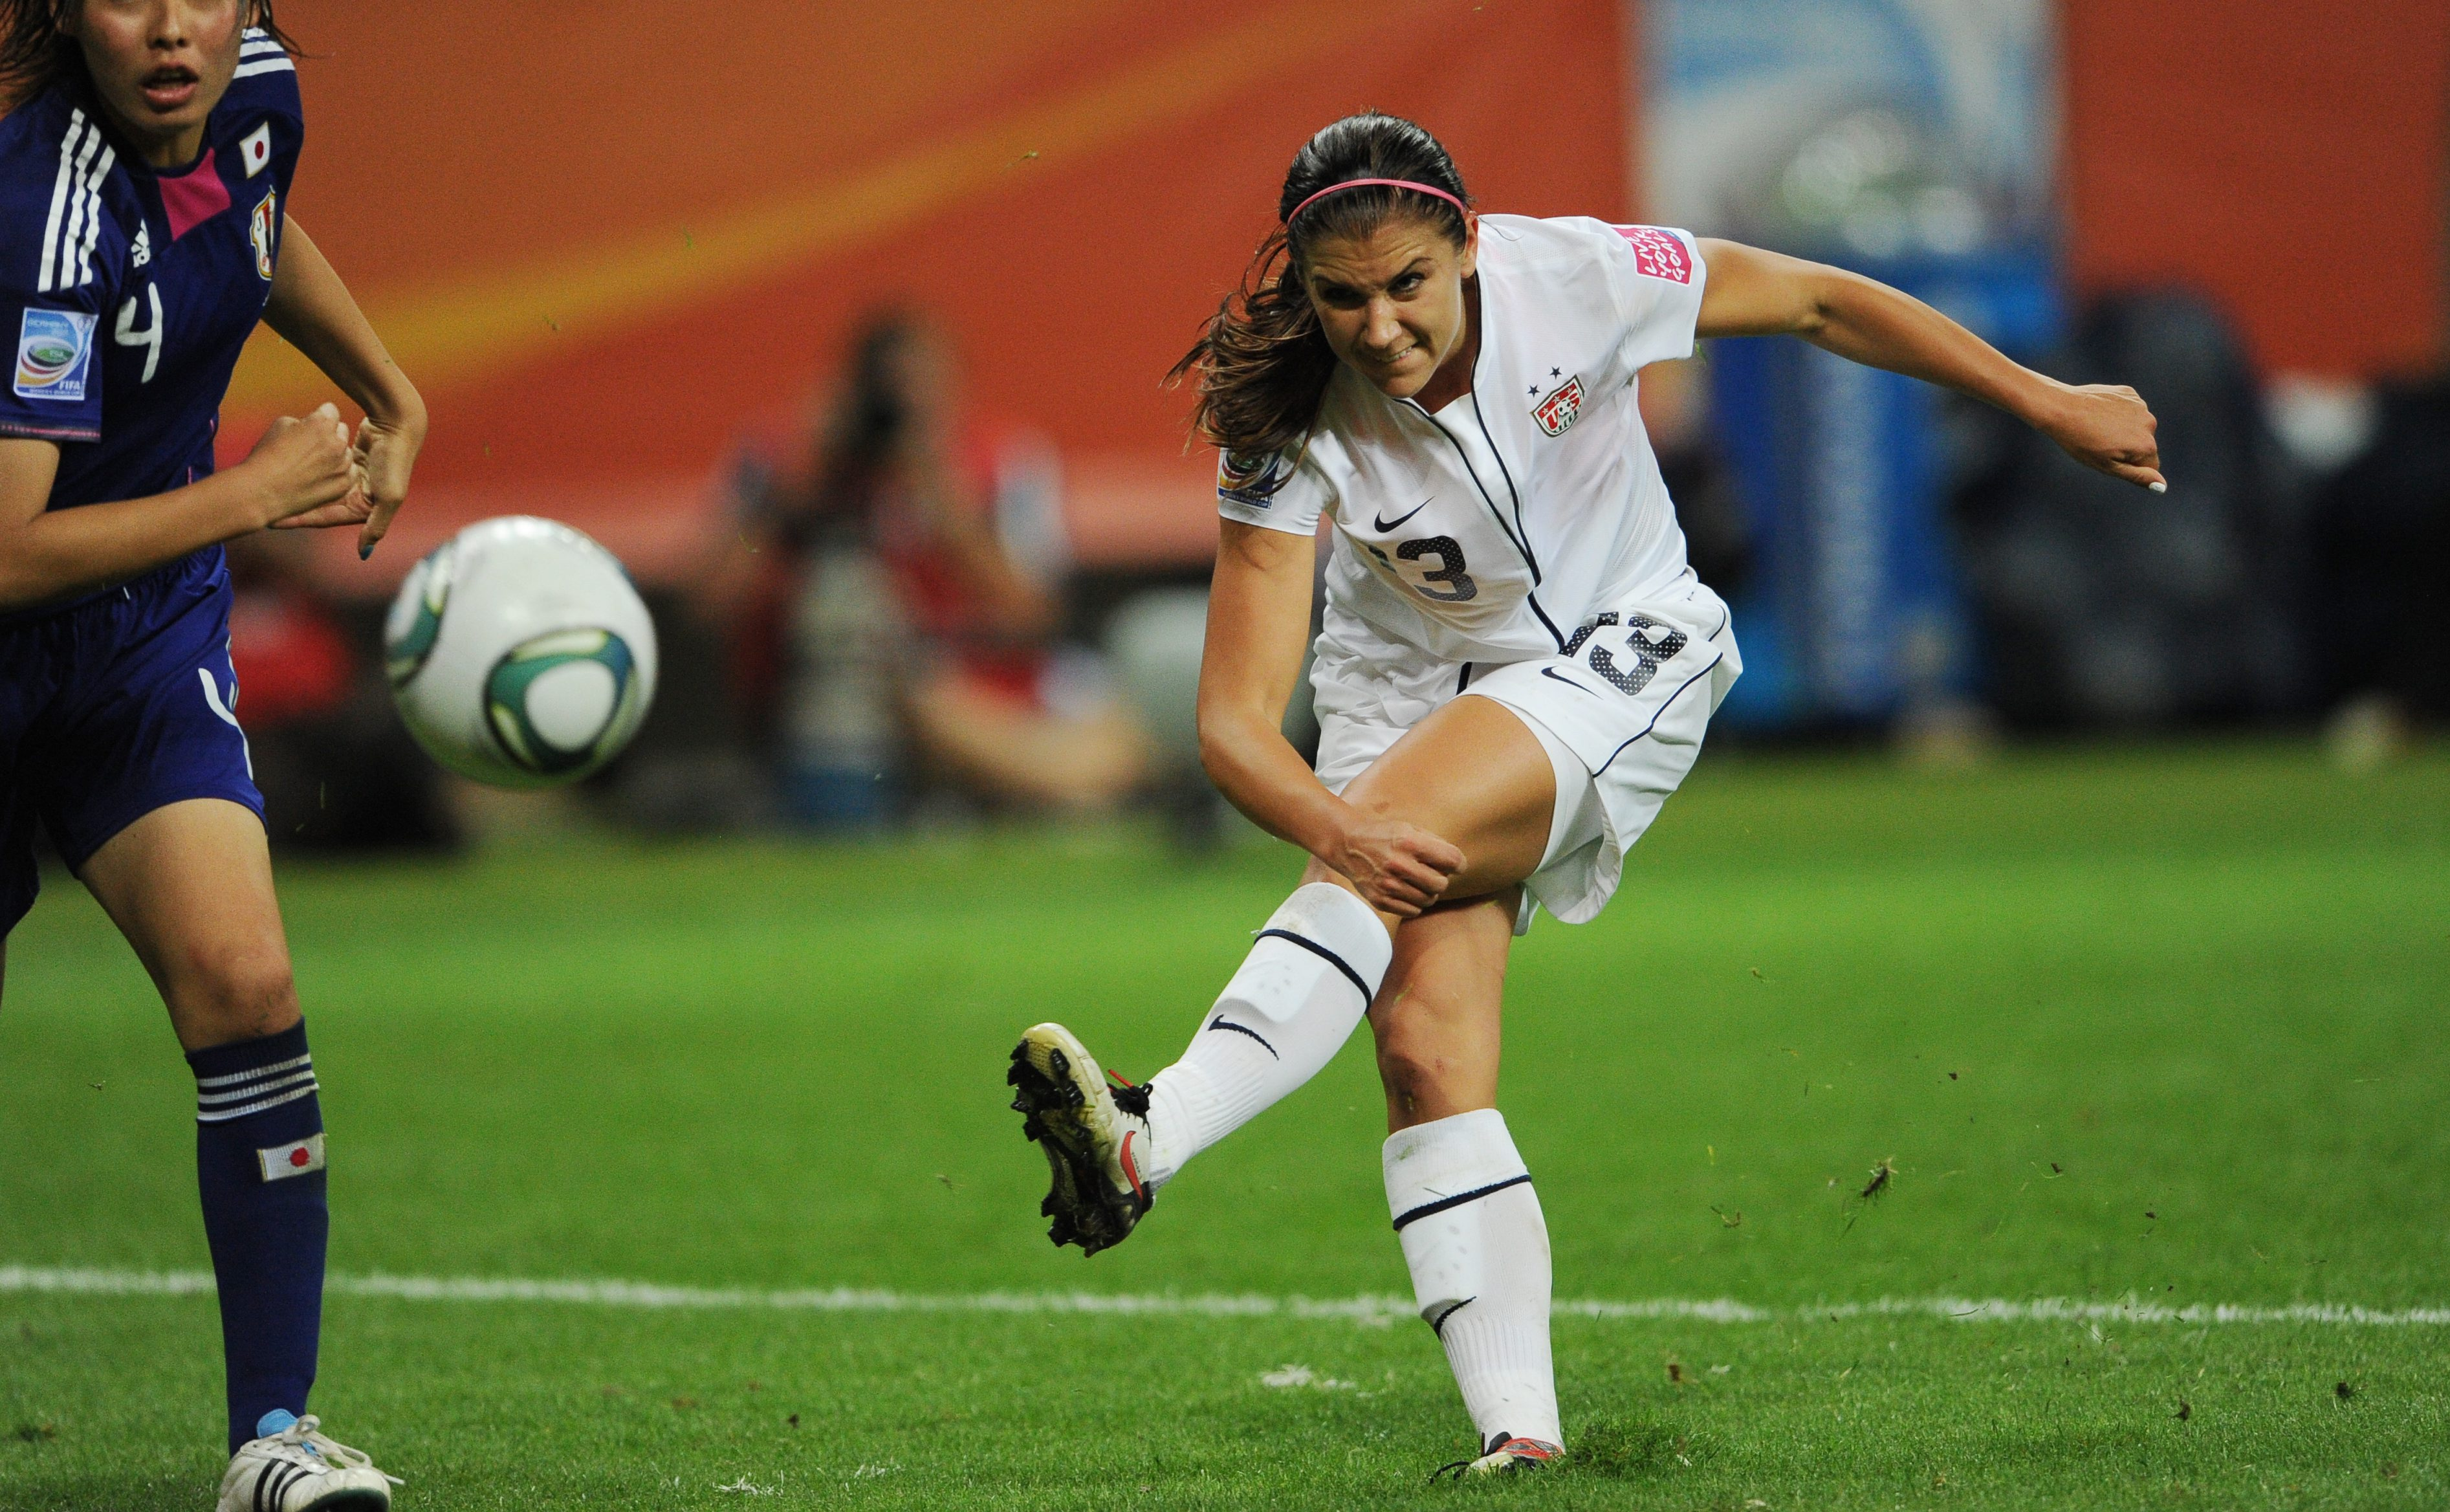 Women's World Cup image - athletic